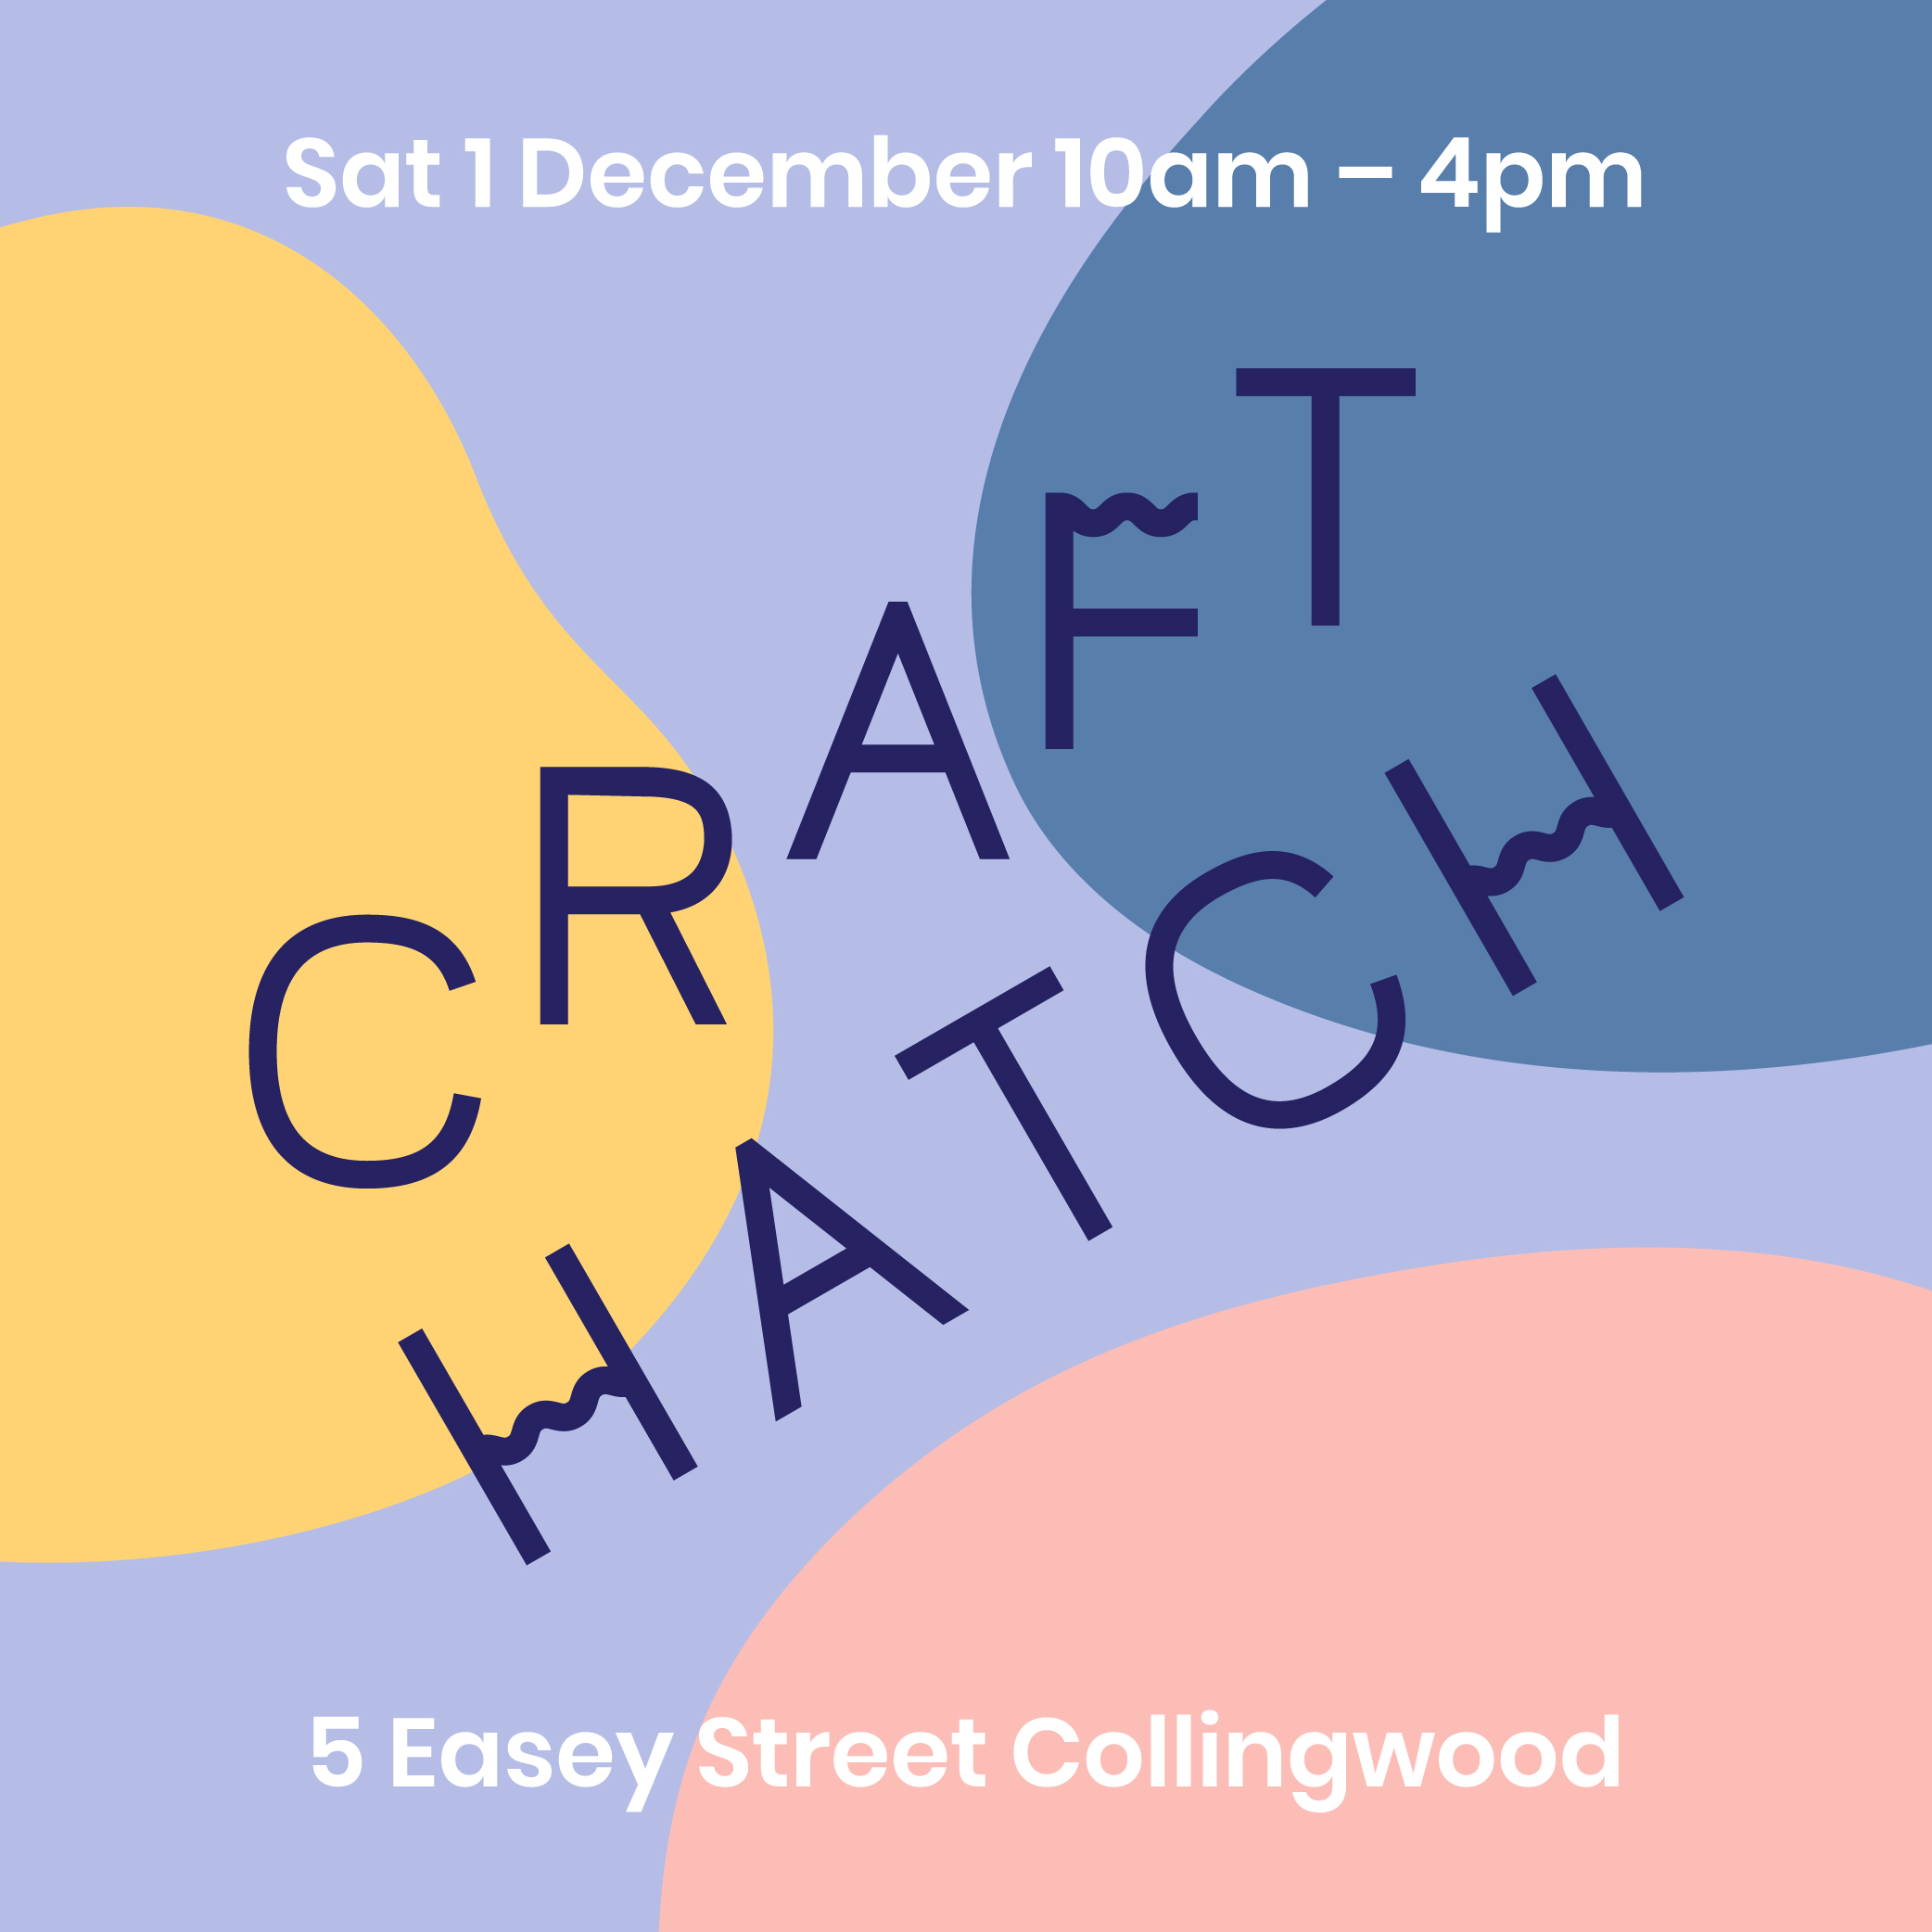 We are back to Craft Hatch Market this year! See you there!